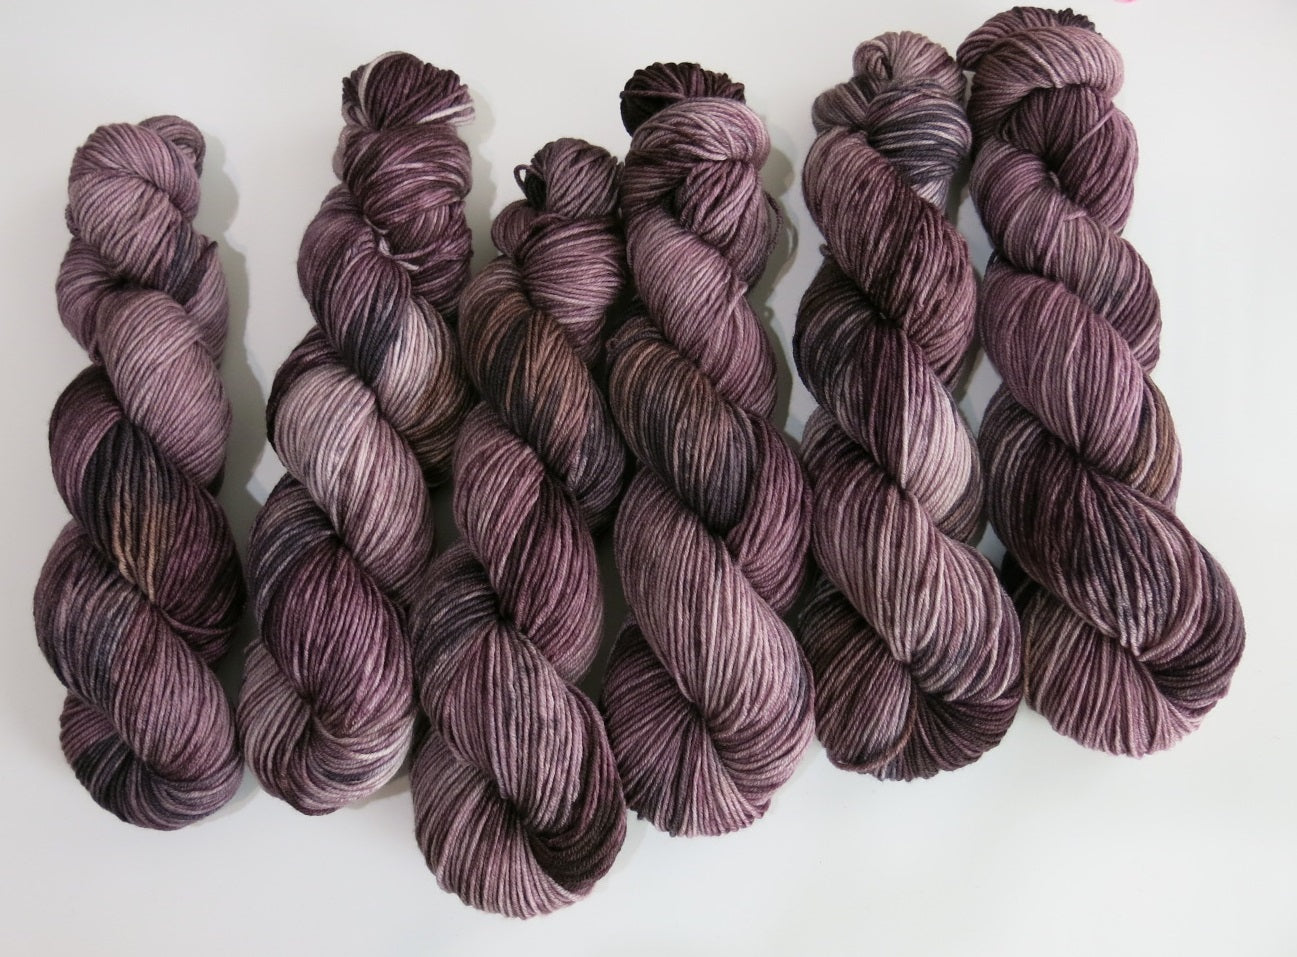 speckled dark brown kettle dyed wool for knitting and crochet